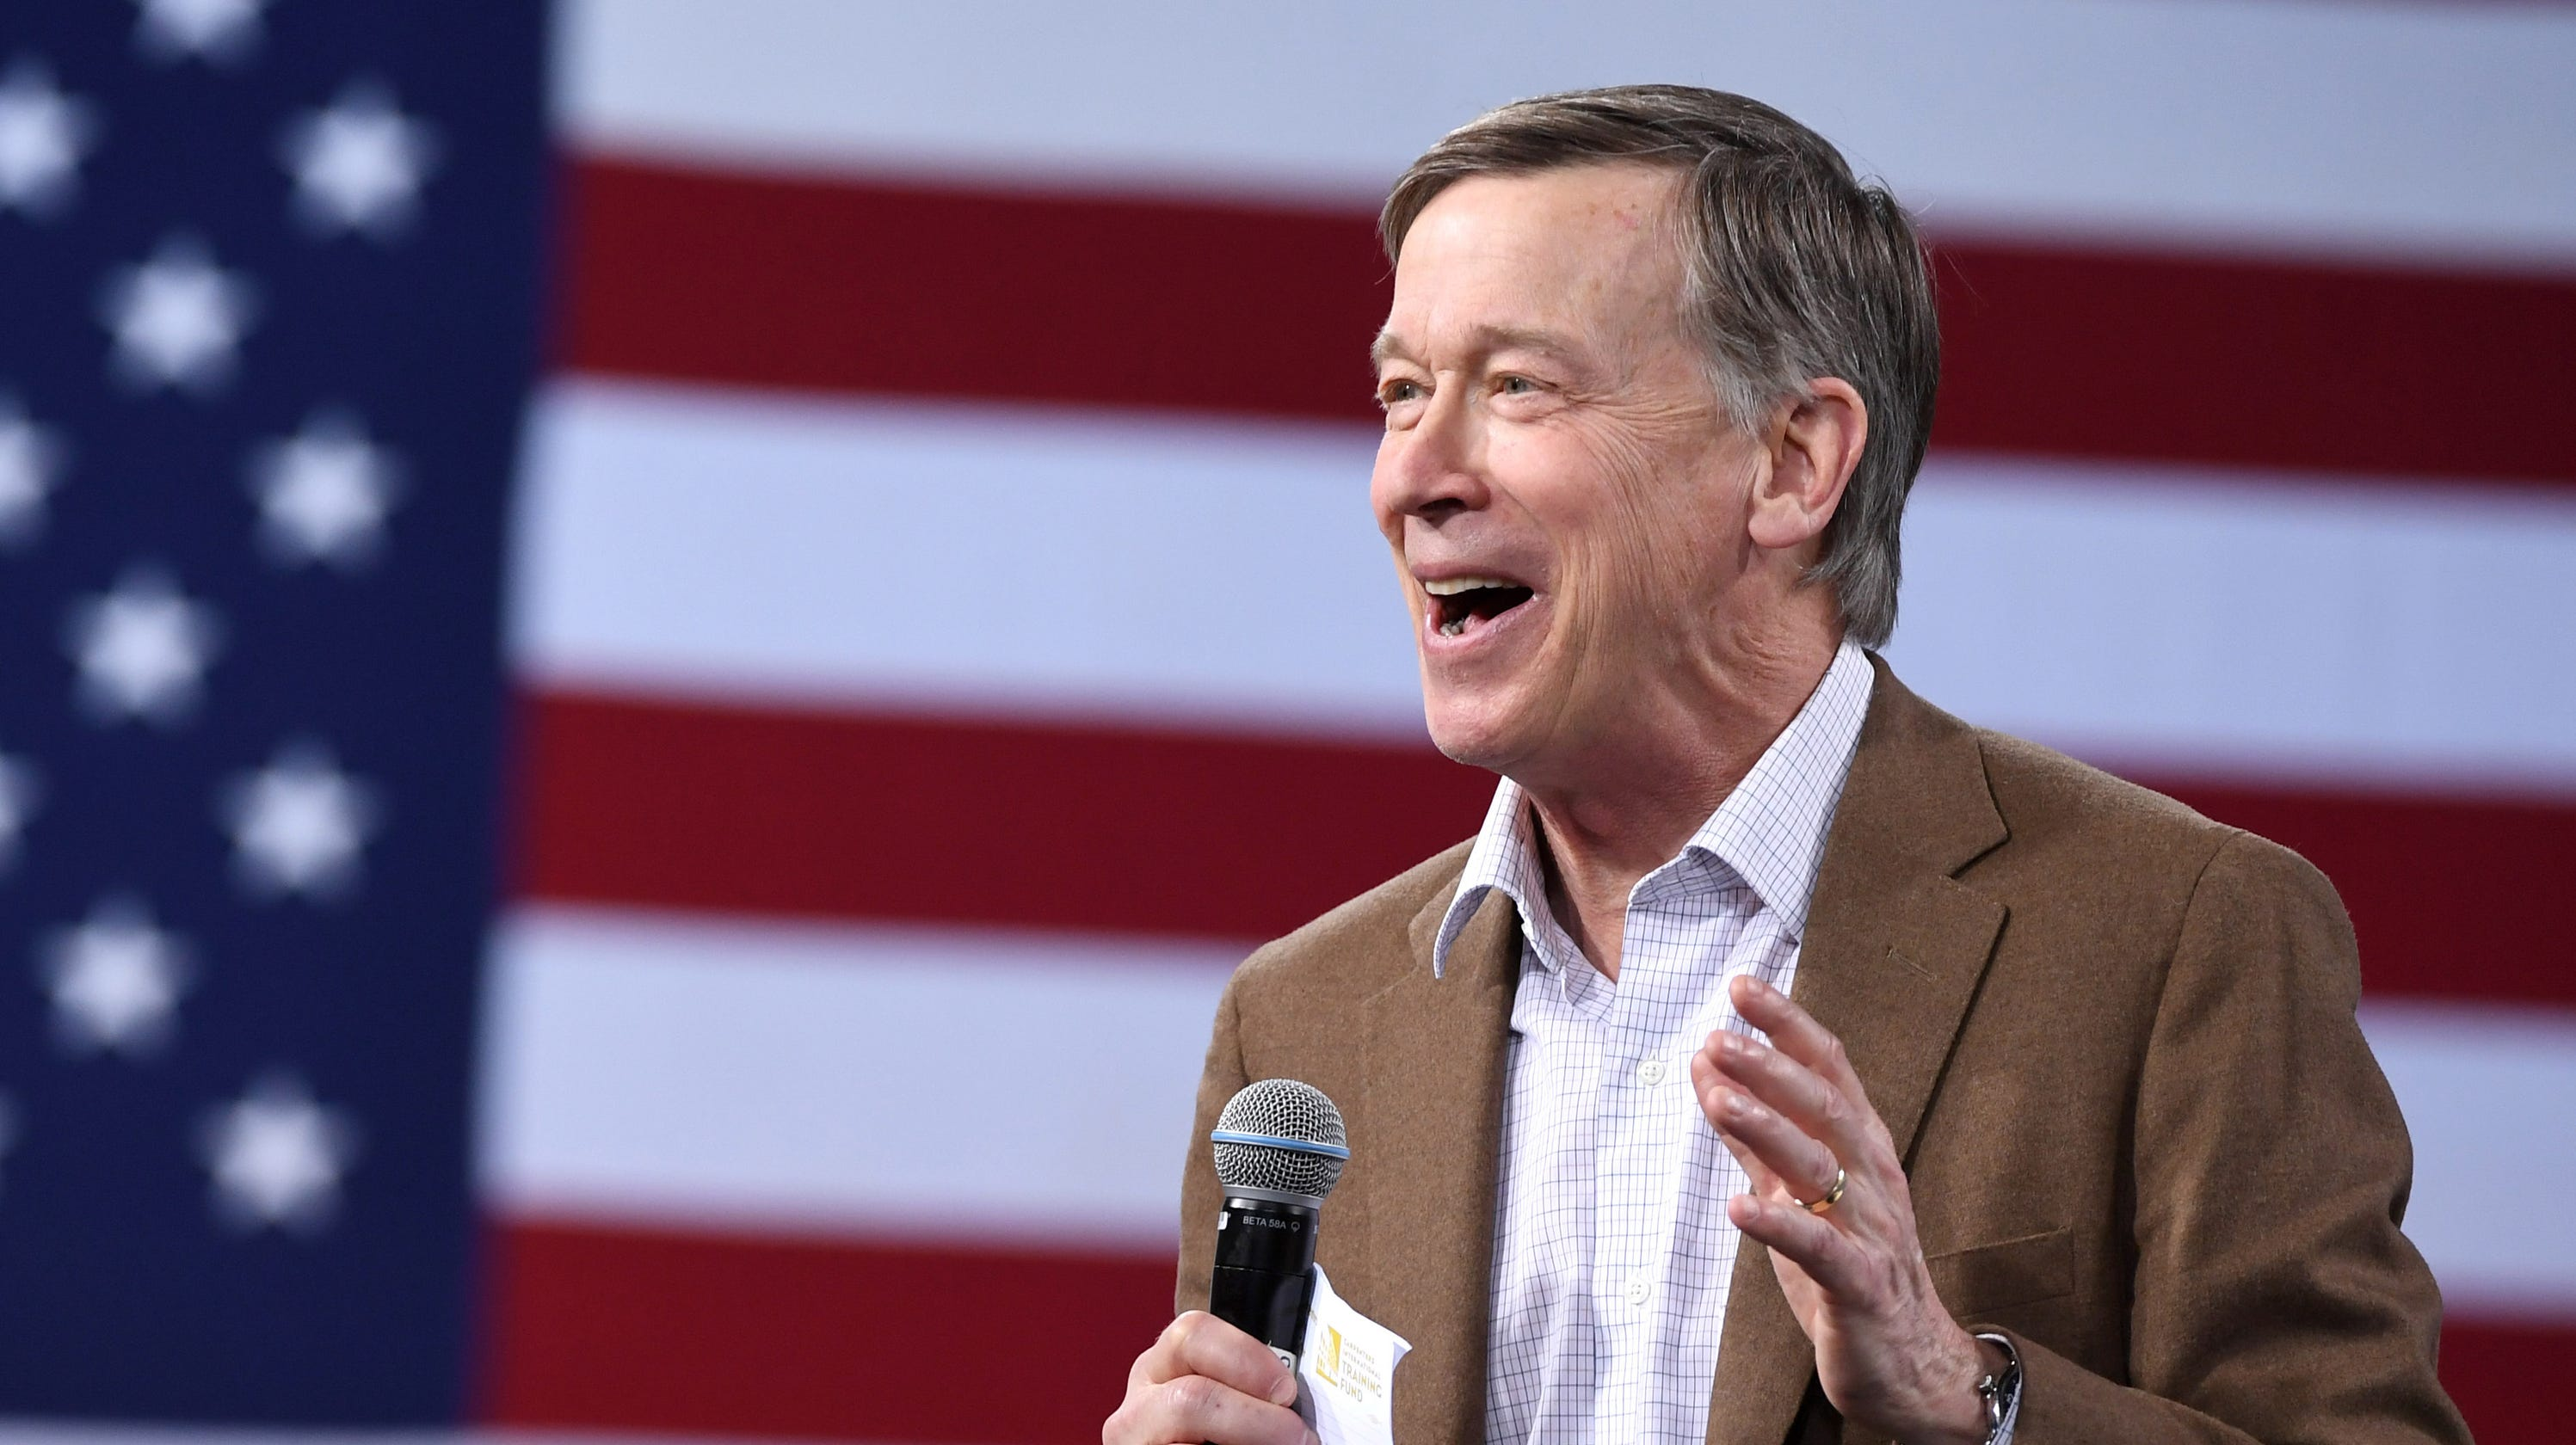 Hickenlooper announces Senate bid in a video while playing pool, calls self 'straight shooter'